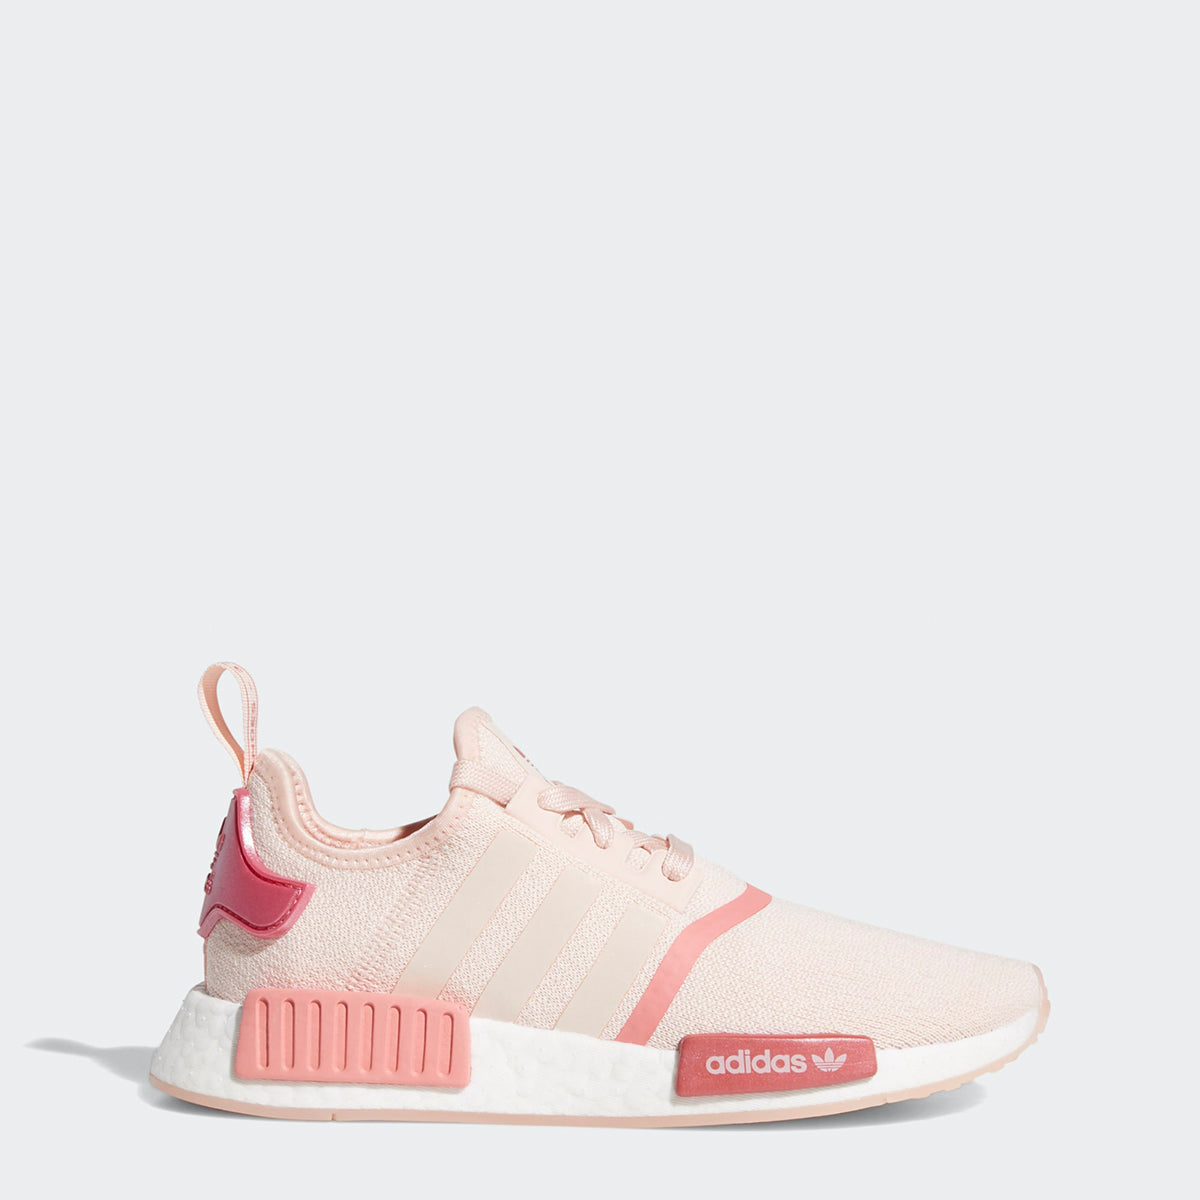 Adidas Nmd R1 Shoes Icey Pink Eg5647 Chicago City Sports